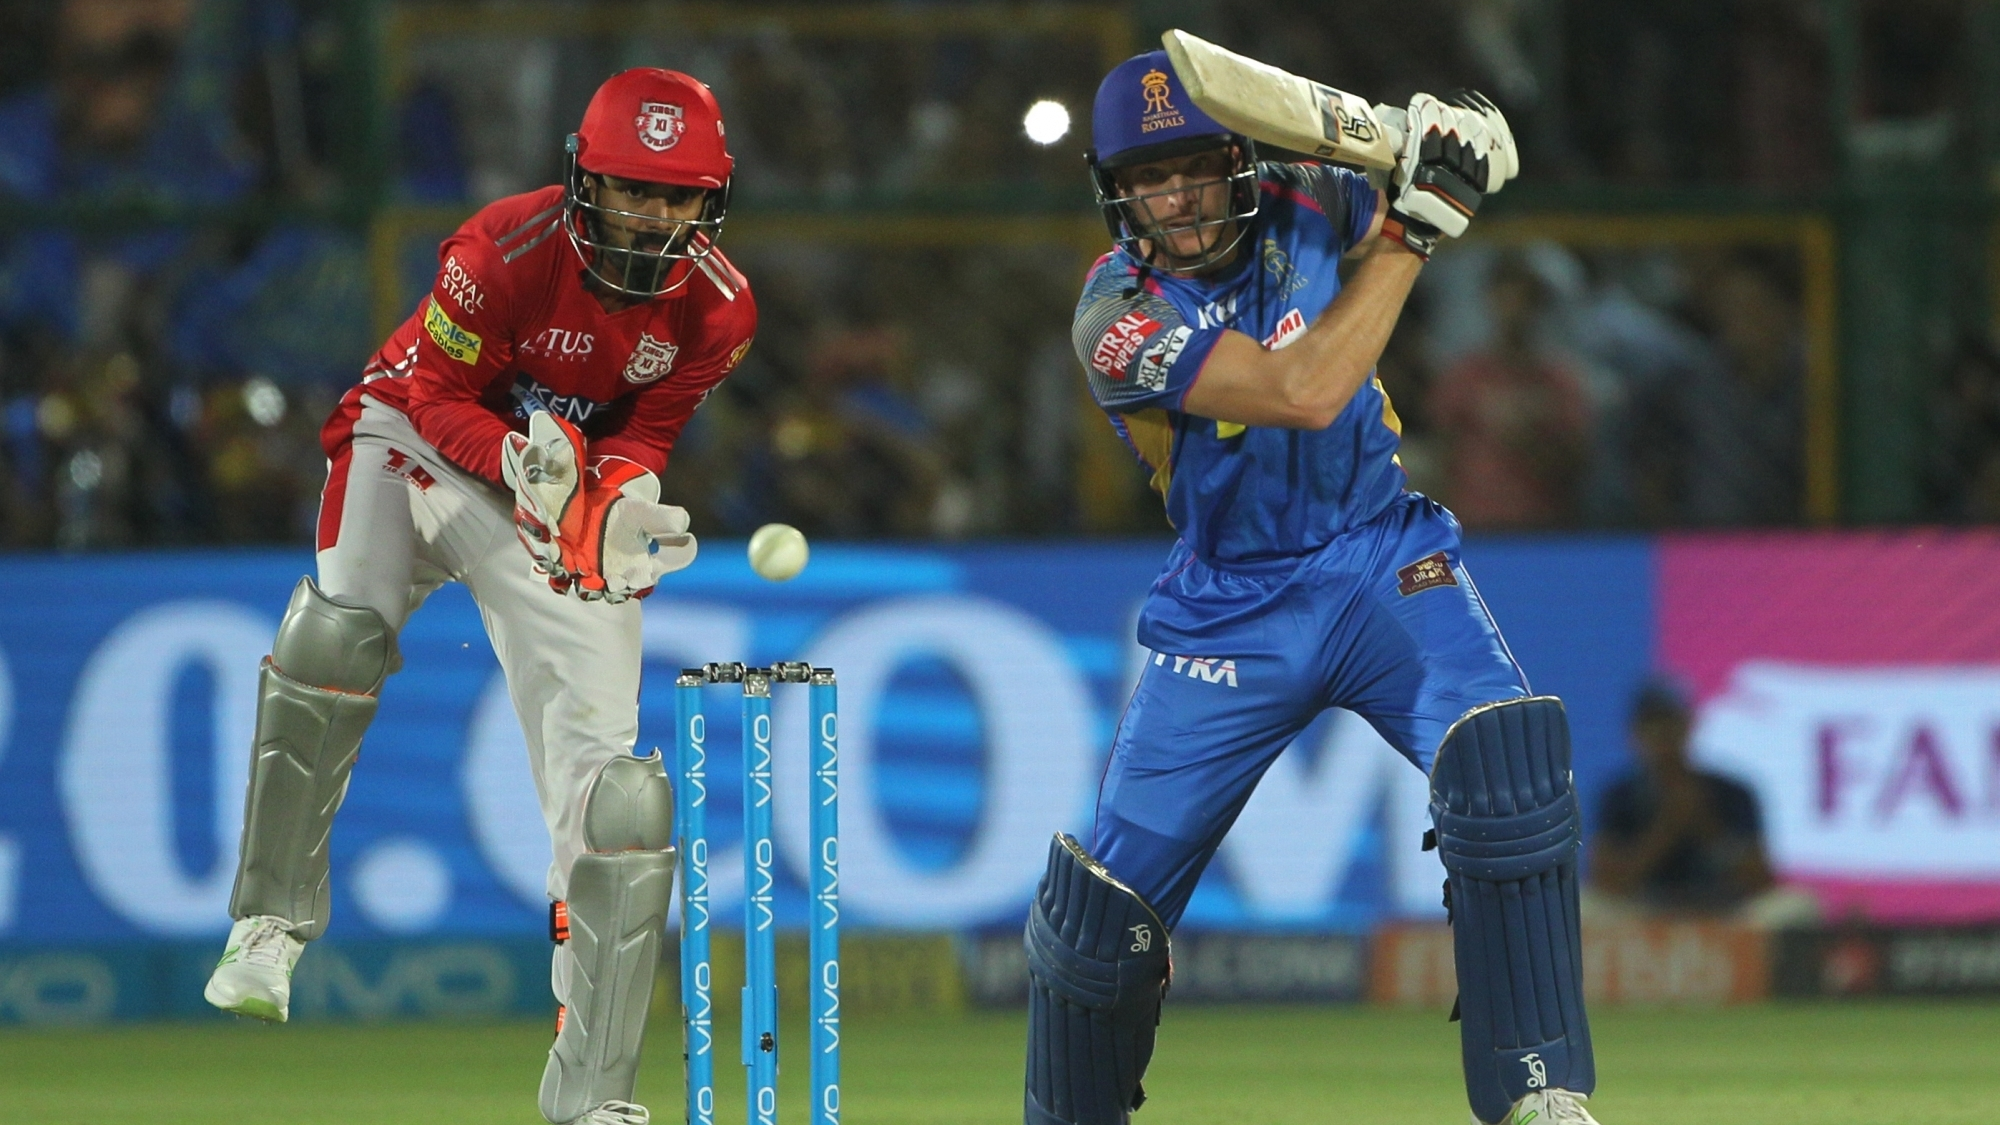 IPL 2018: Twitterverse laud Jos Buttler's 58-ball 82 that propelled RR to 158 against KXIP